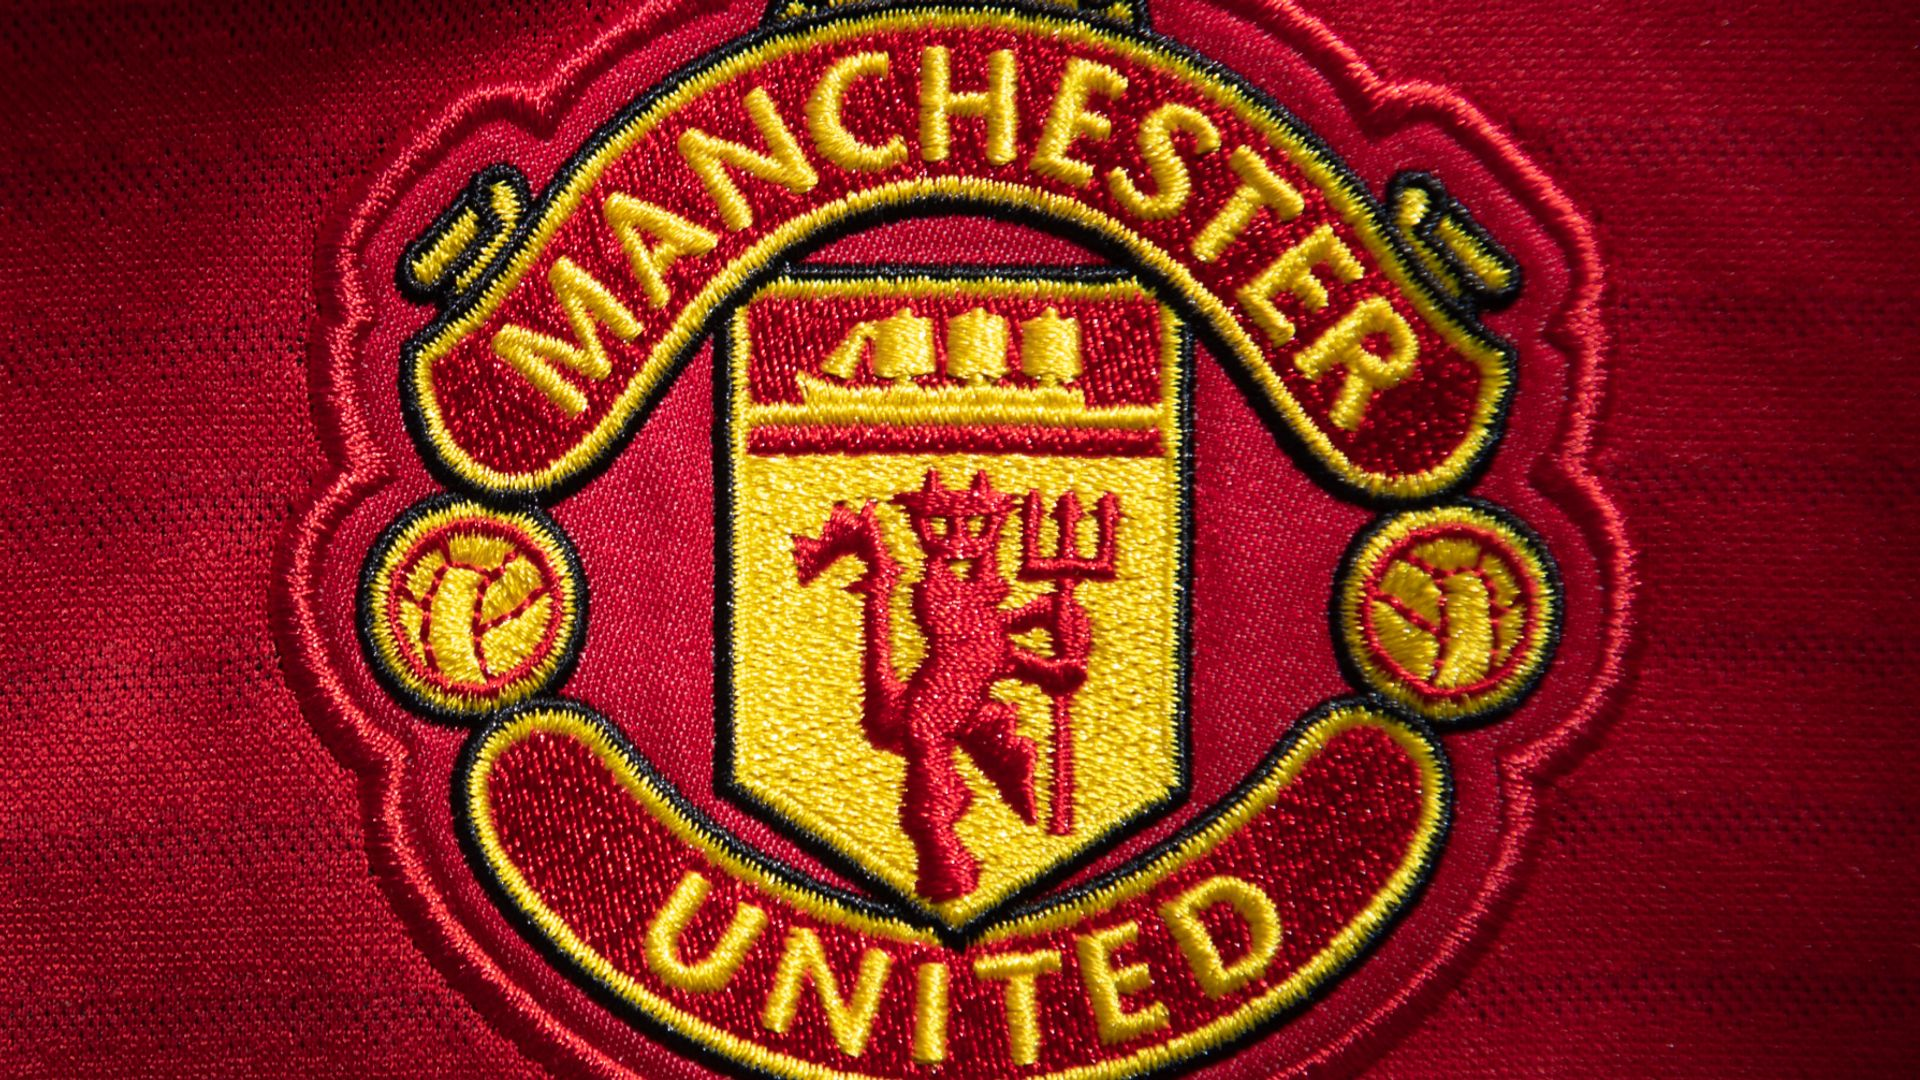 Man Utd sue Football Manager makers